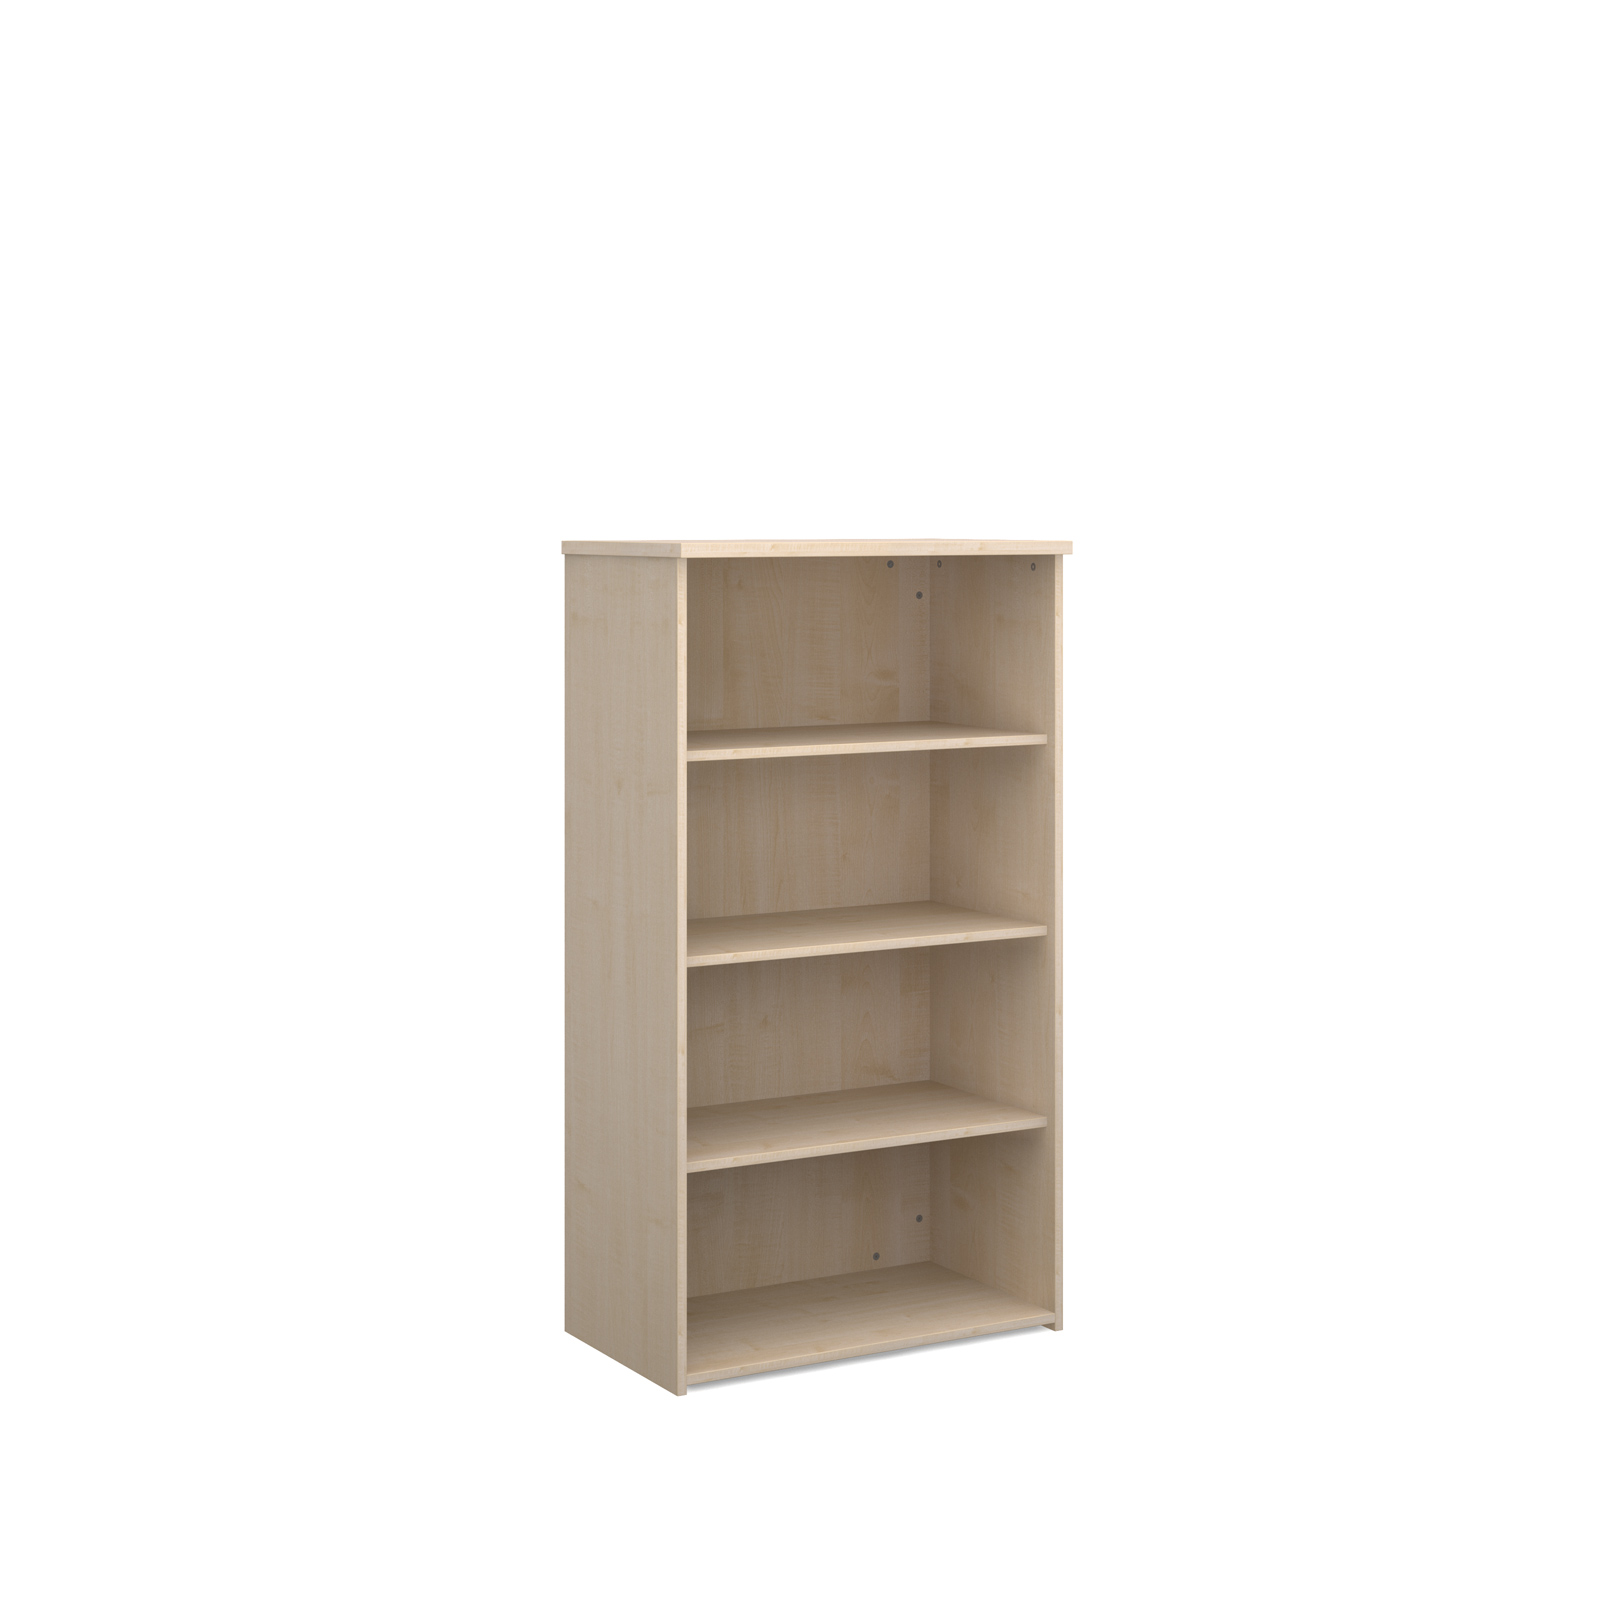 Over 1200mm High Universal bookcase 1440mm high with 3 shelves - maple